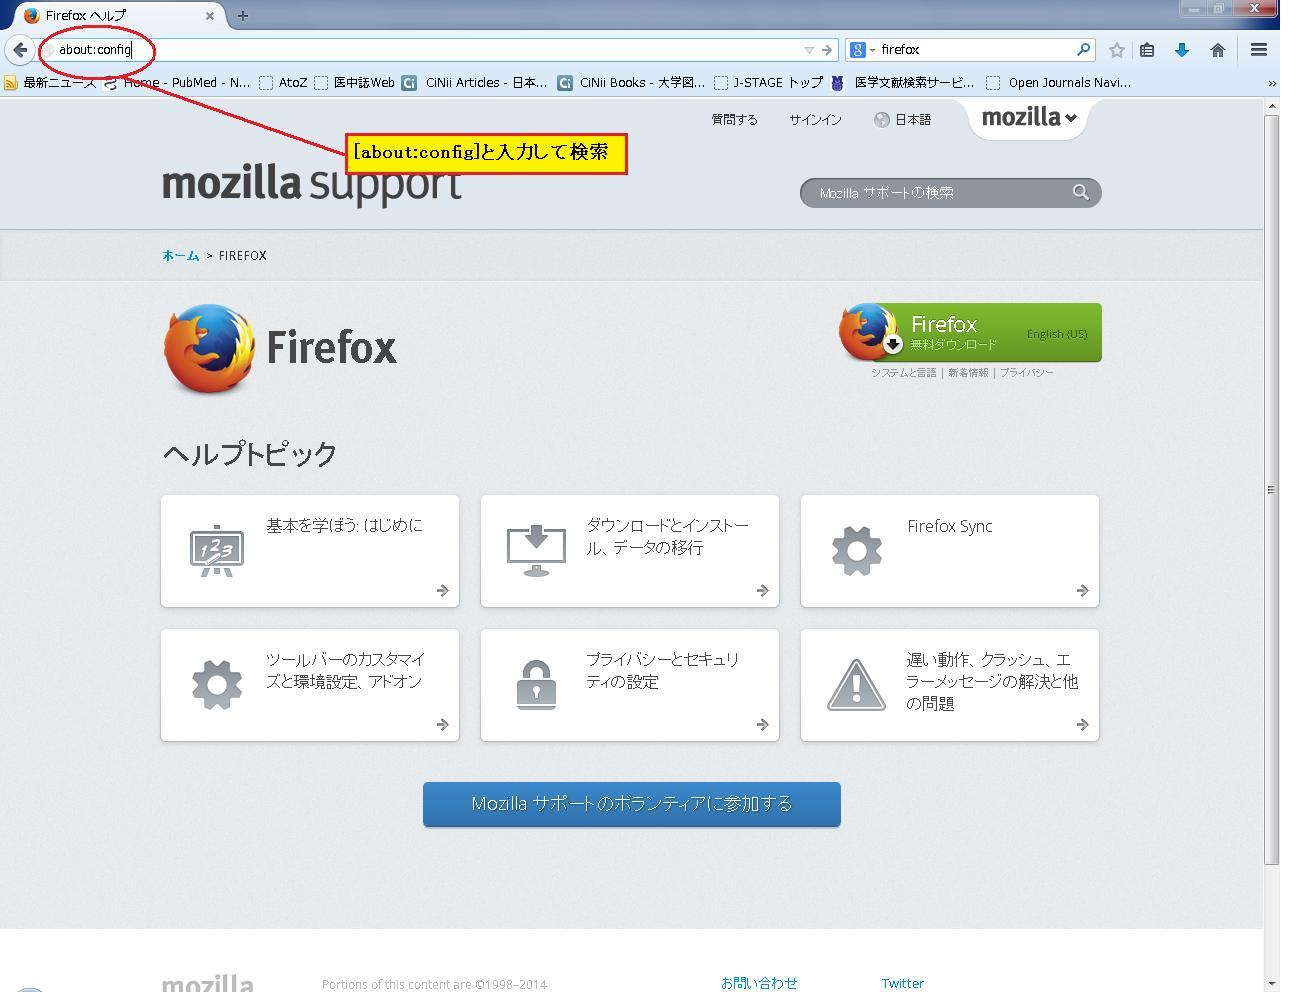 http://www.shinshu-u.ac.jp/institution/library/medicine/uploadimg/firefoxno1.jpg